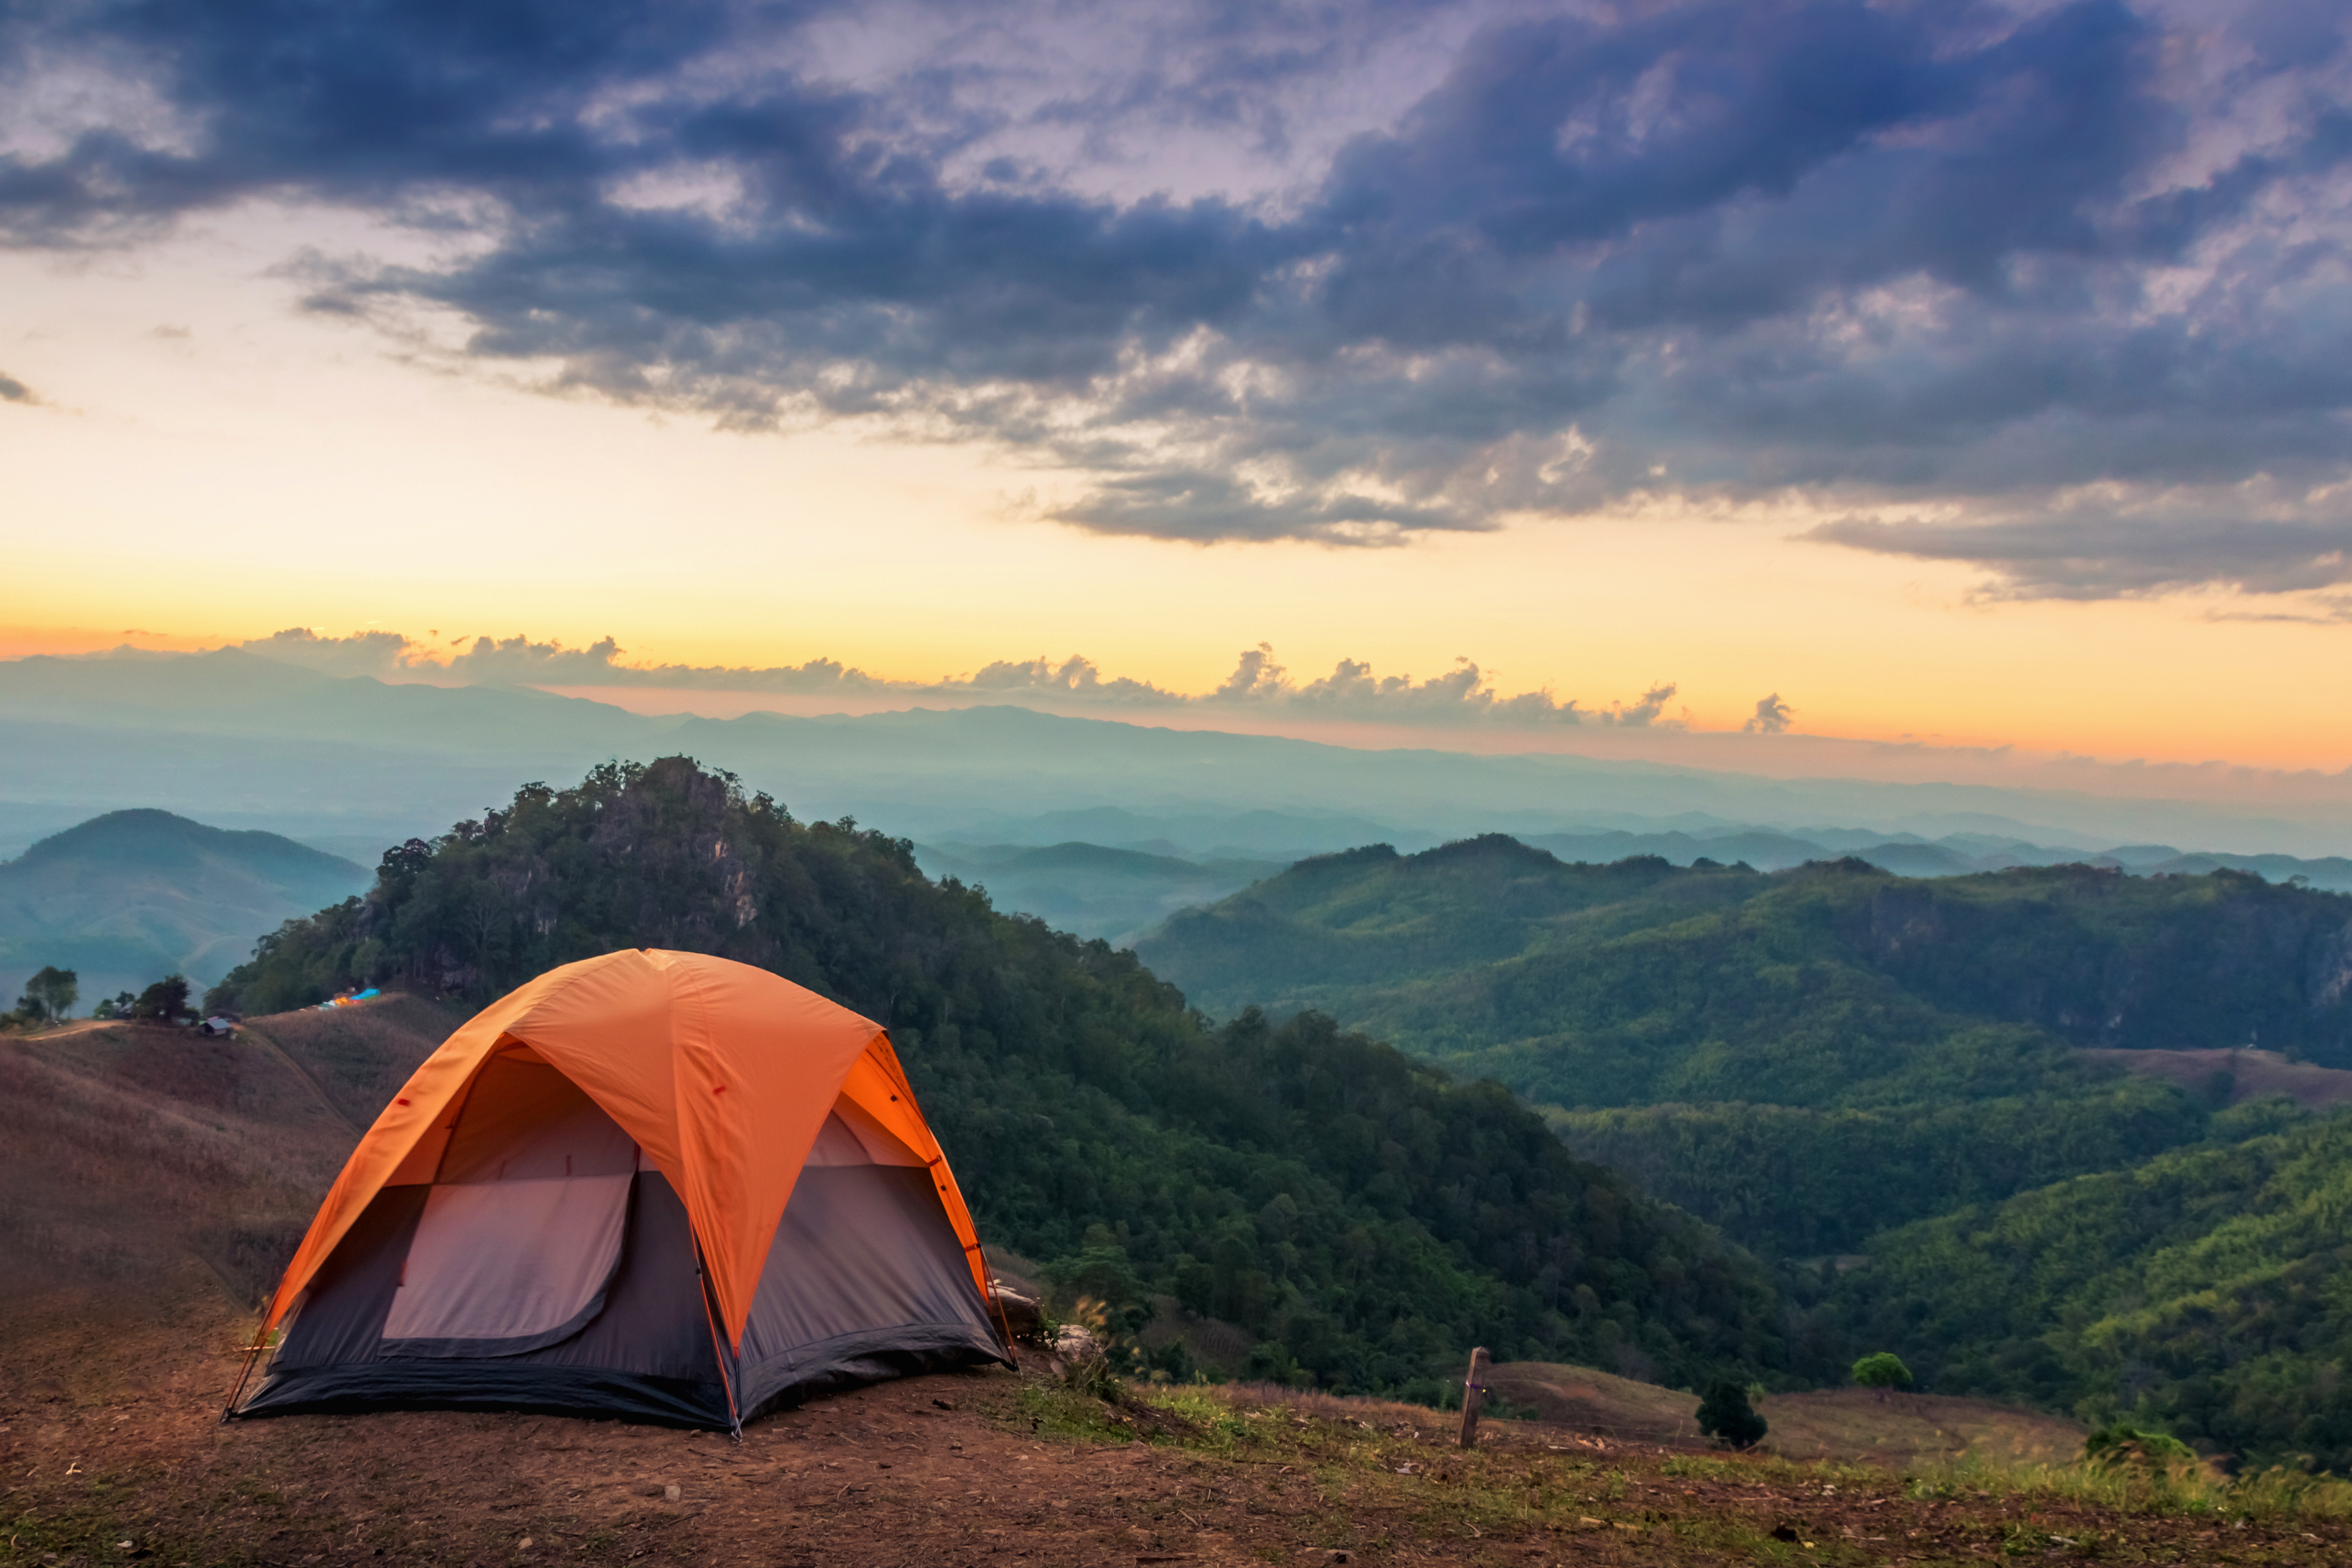 Campground reservations: How to book the best campsite this